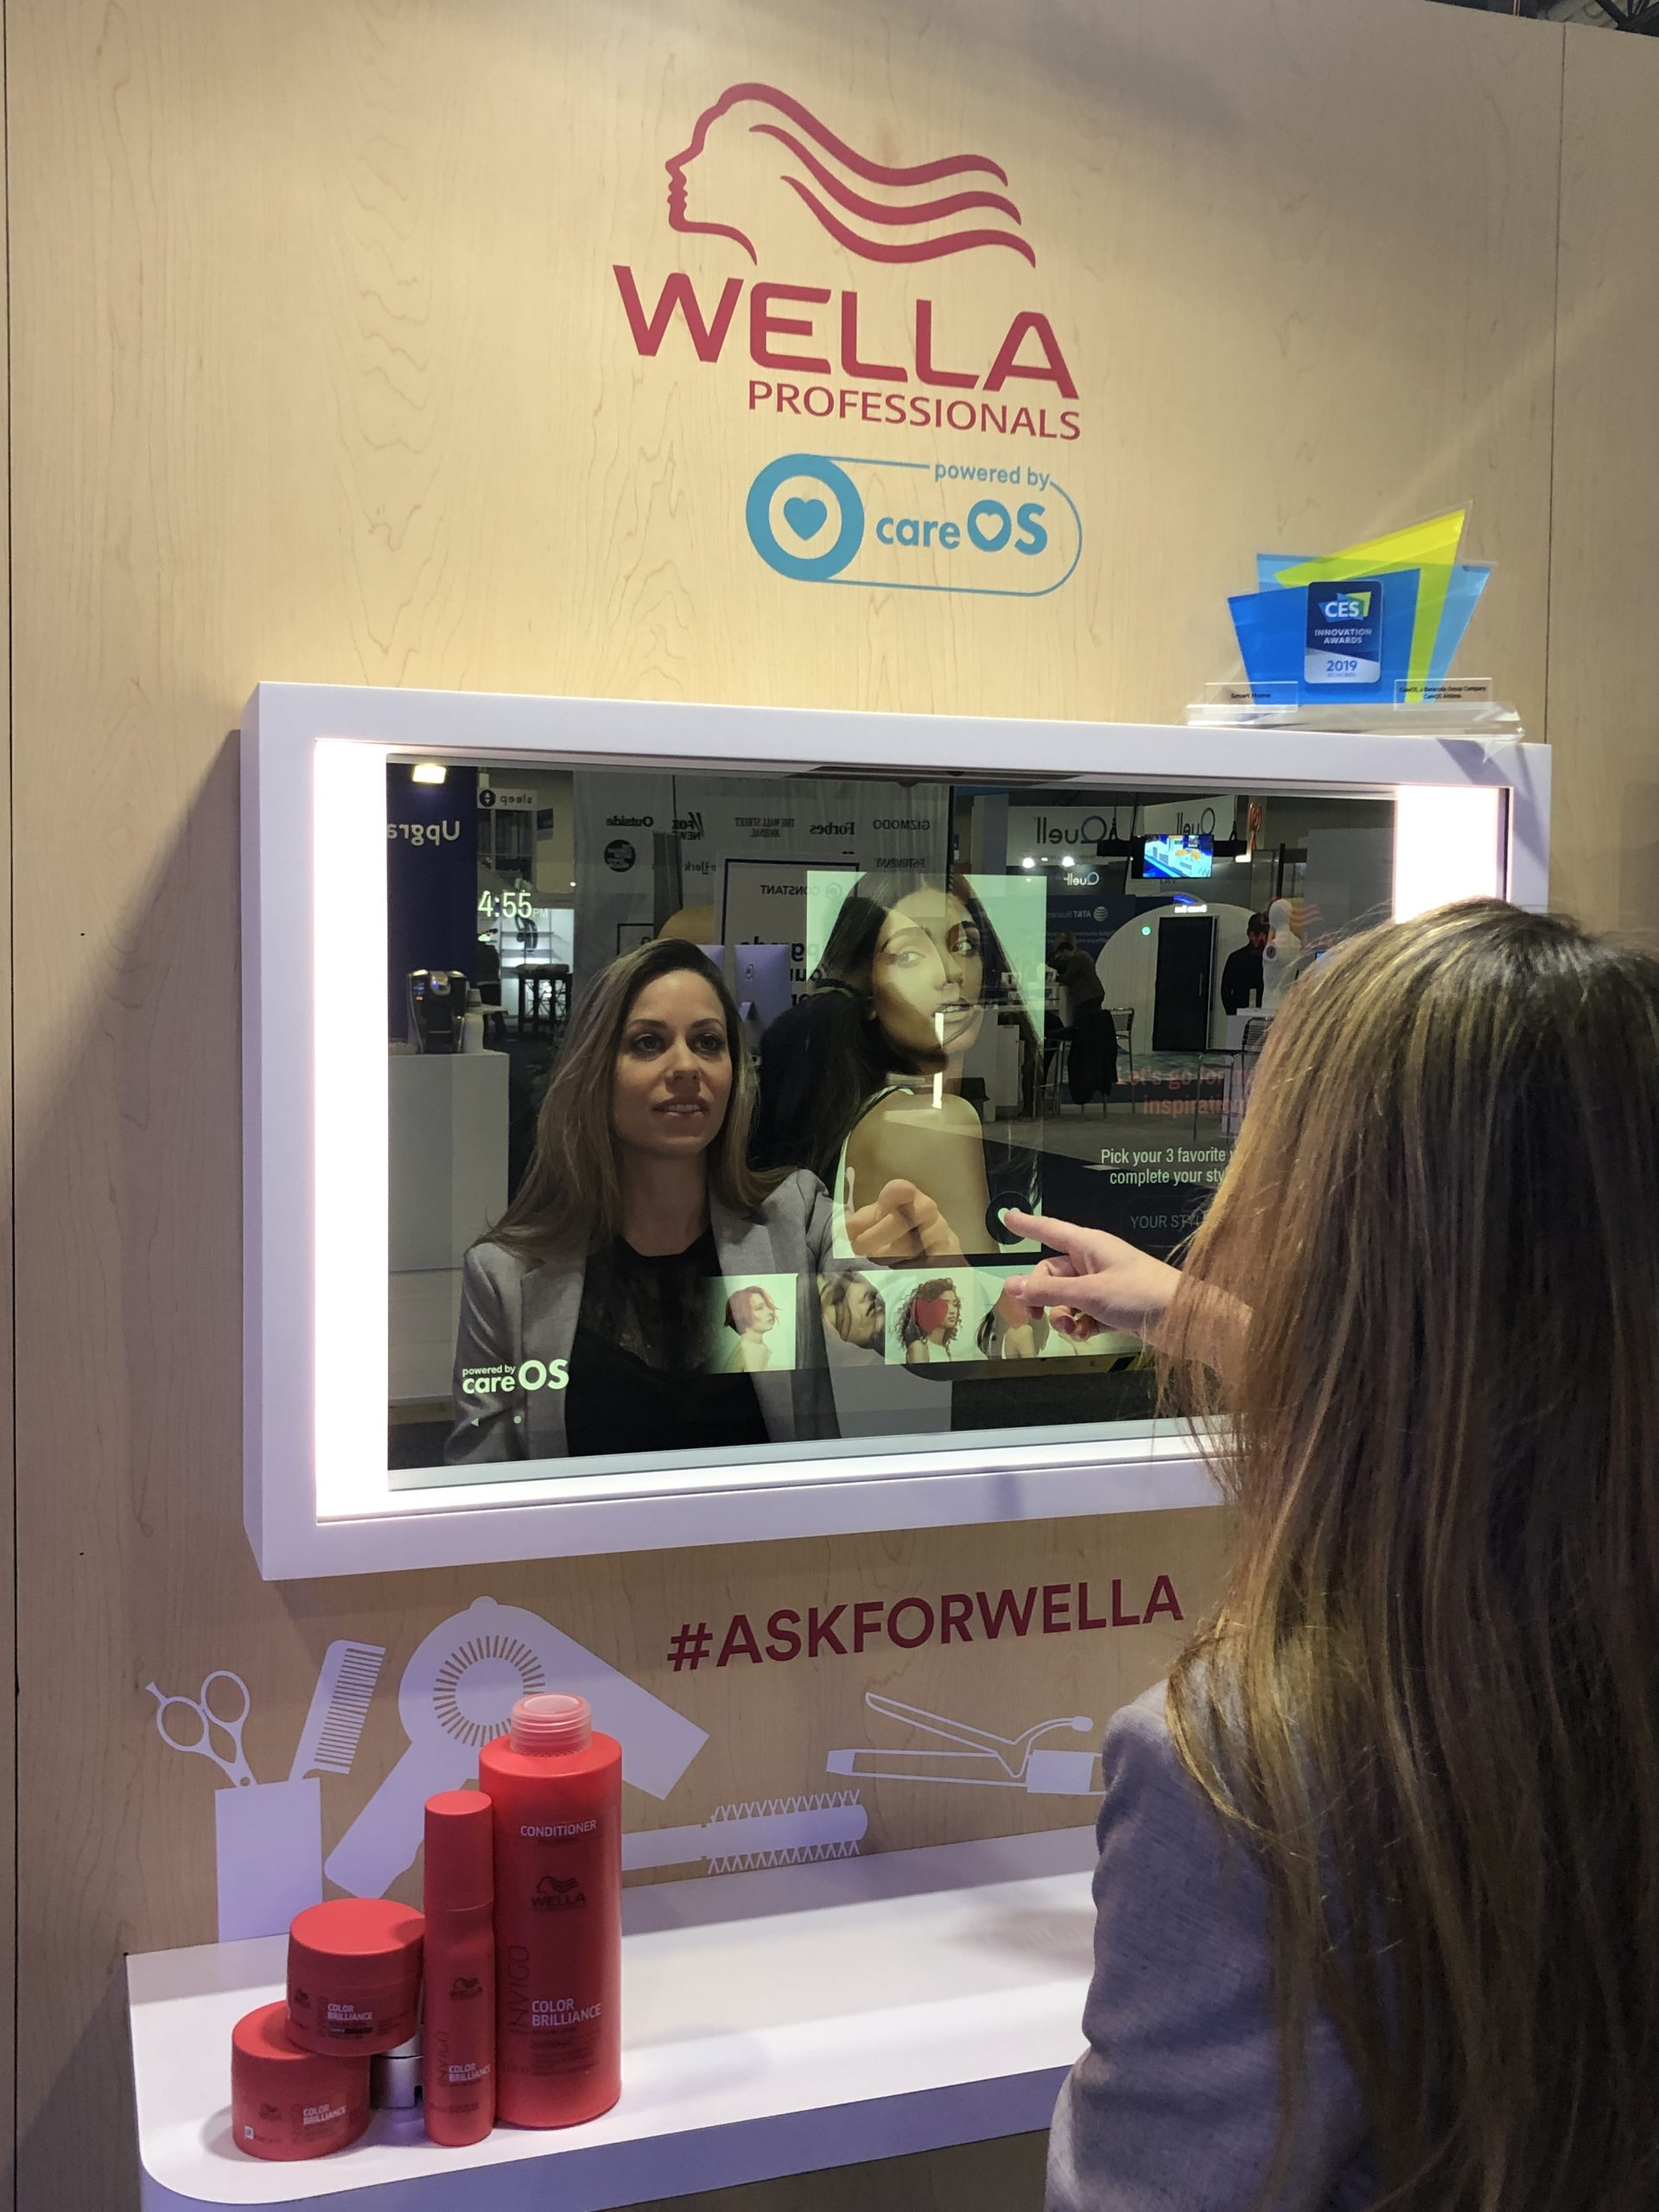 IMG SMART MIRROR WELLA PROFESSIONALS 5 scaled